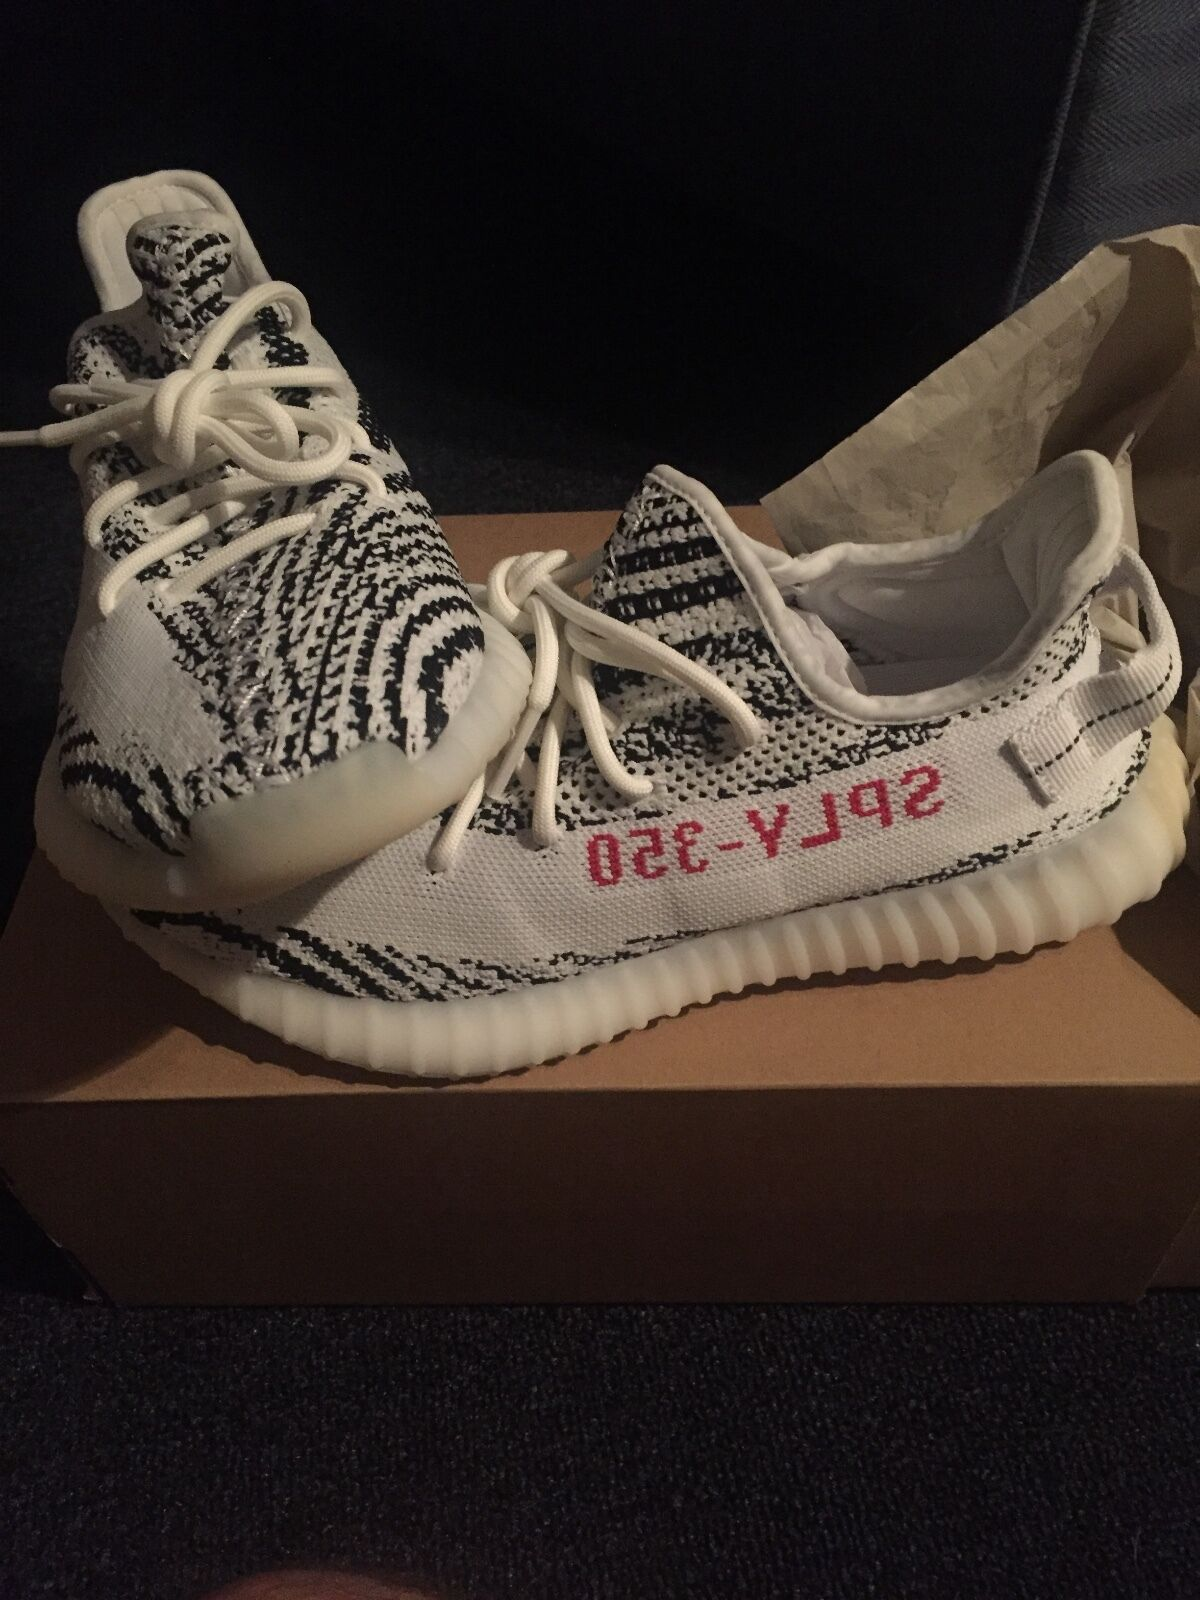 Mens zebra yeezys sz 9.5 ....these are brand new with box